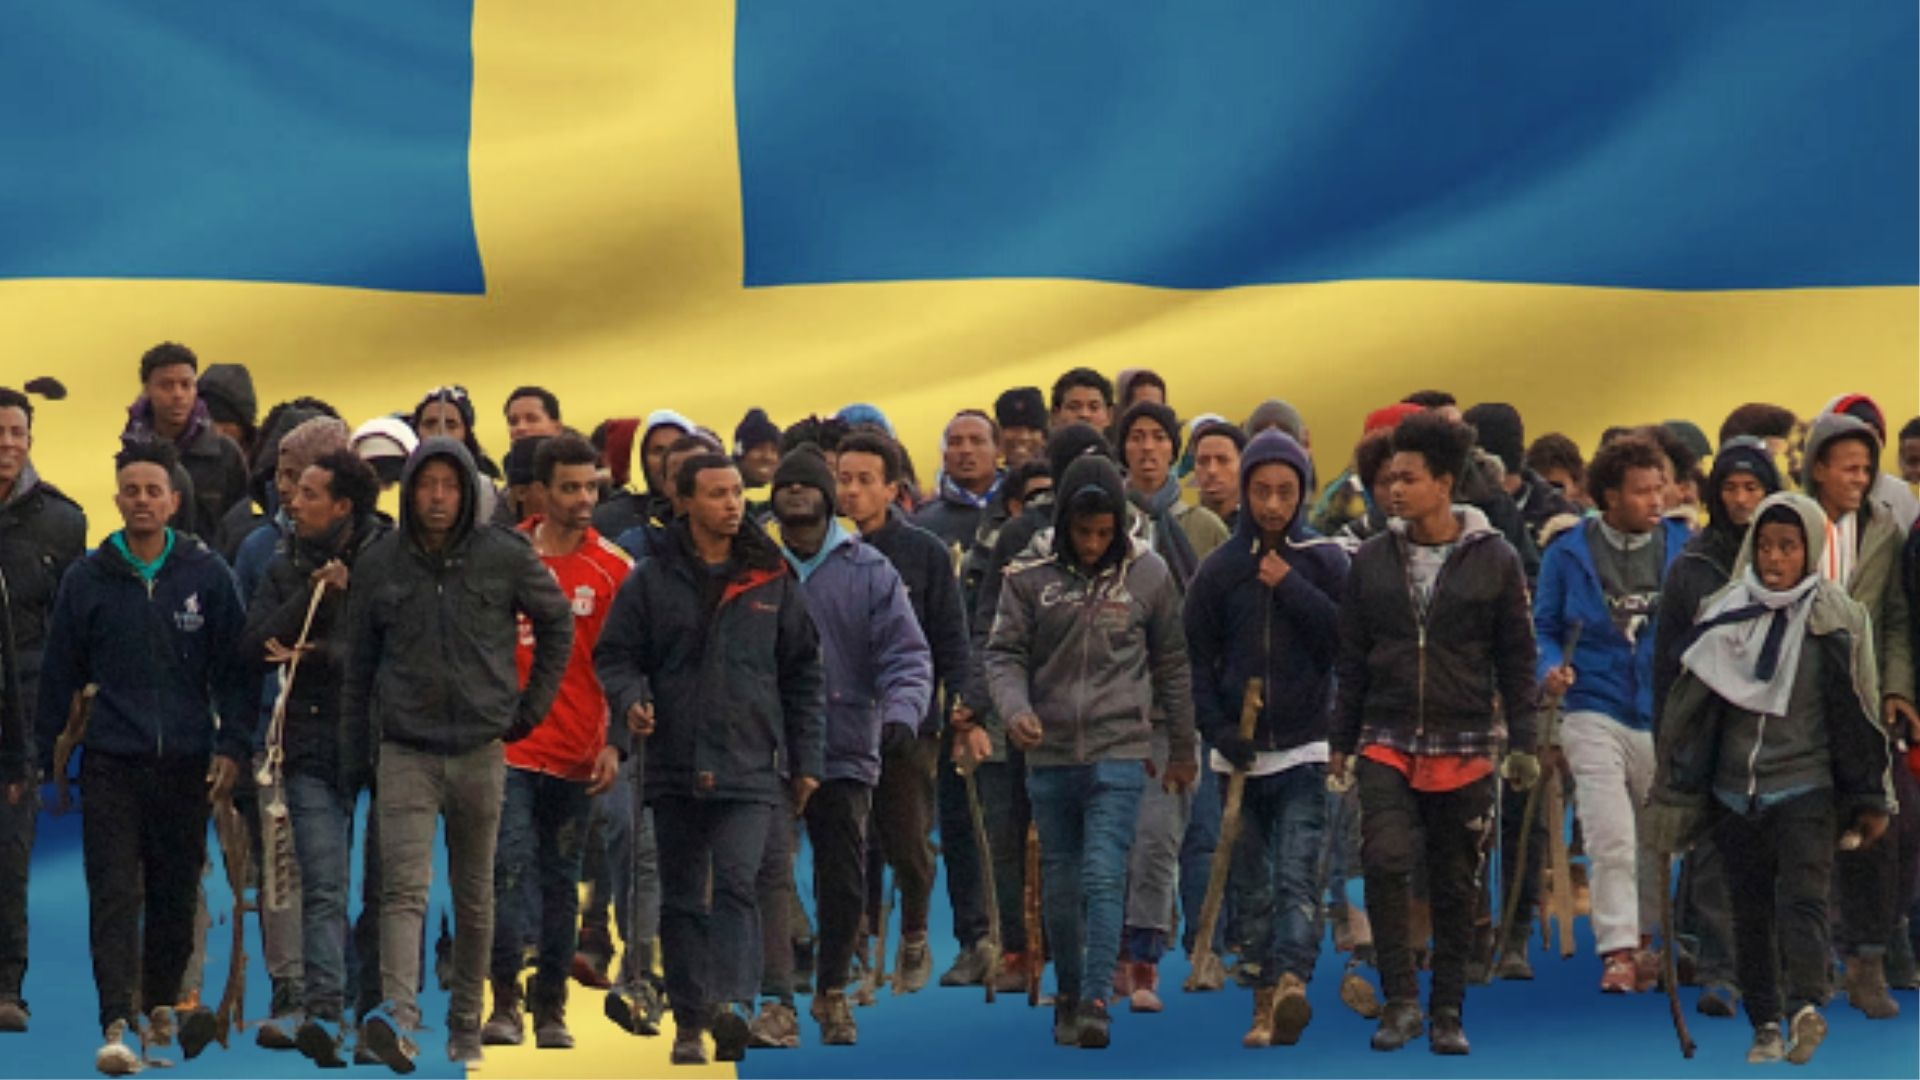 Dismantling of Sweden's soul as language change to suit migrants